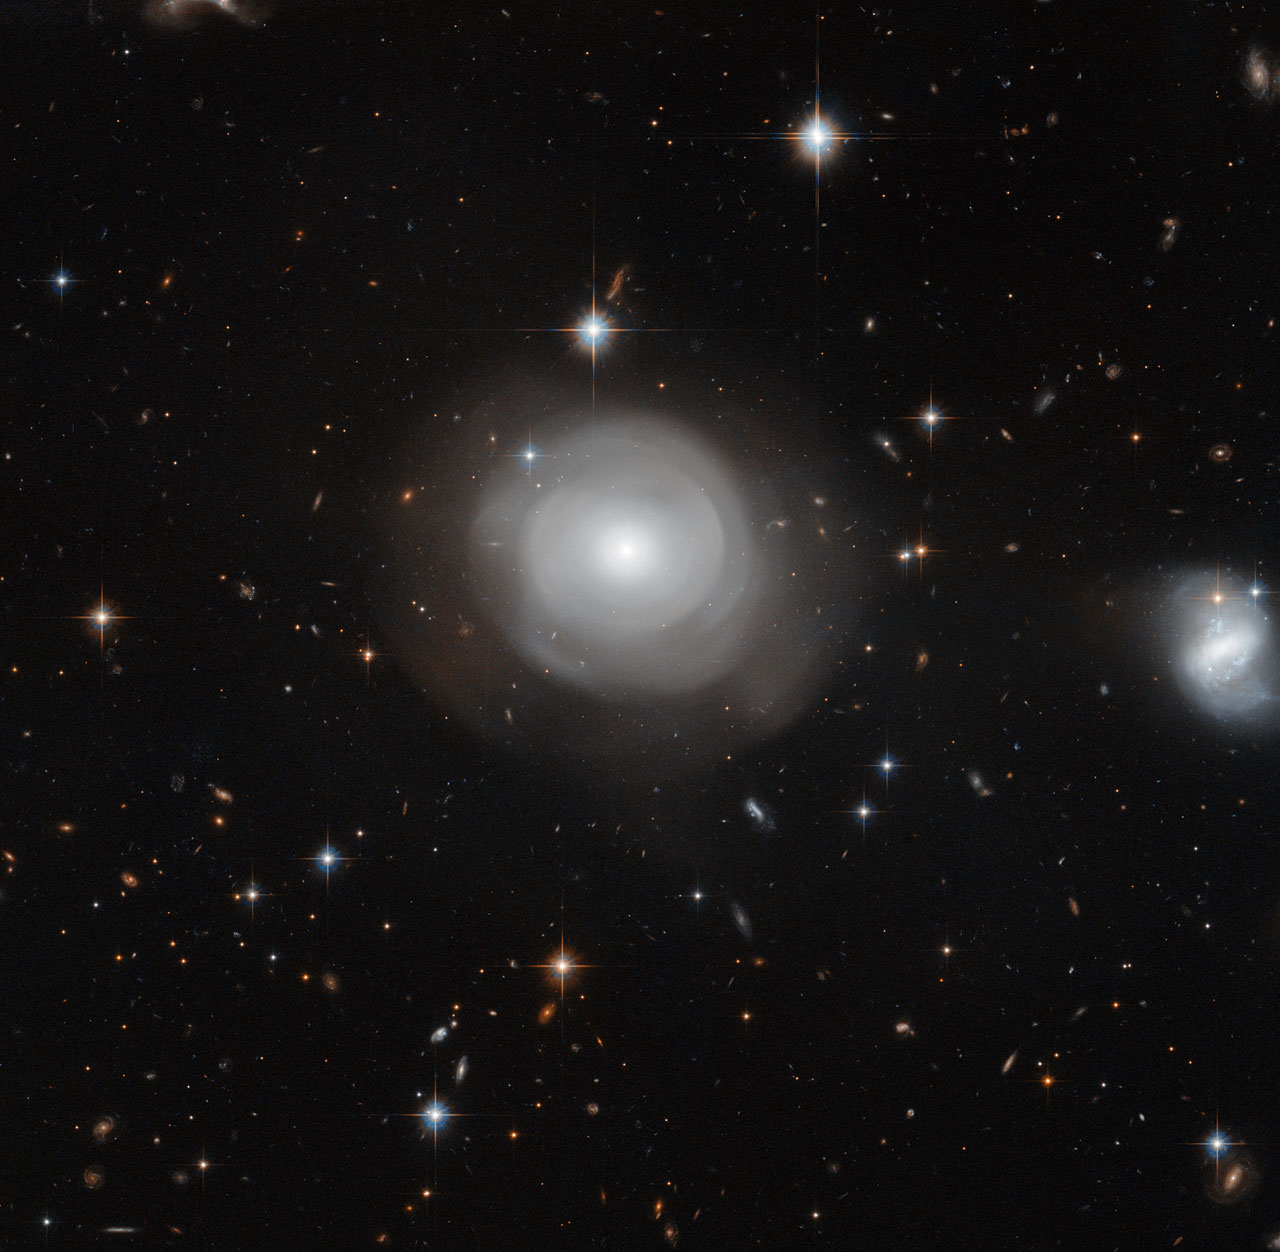 Hubble image of eso 381 12 esa hubble for Immagini galassie hd